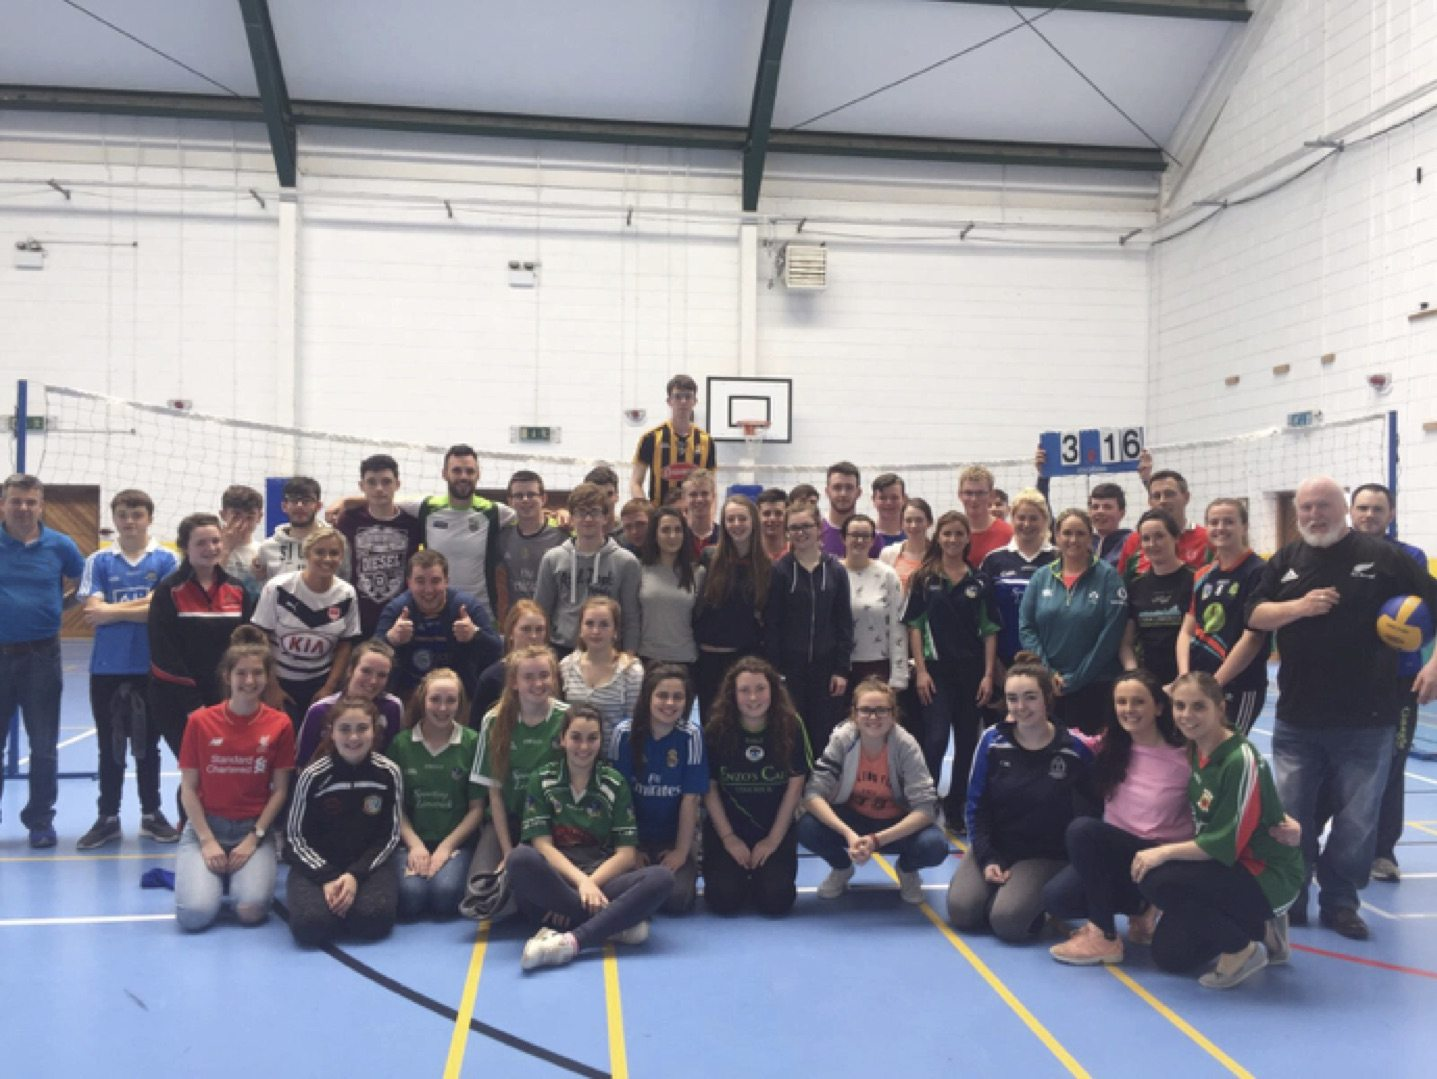 May 2017: Some of the staff and students who took part in the teachers vs students volleyball game as part of the Active School Week in Desmond College